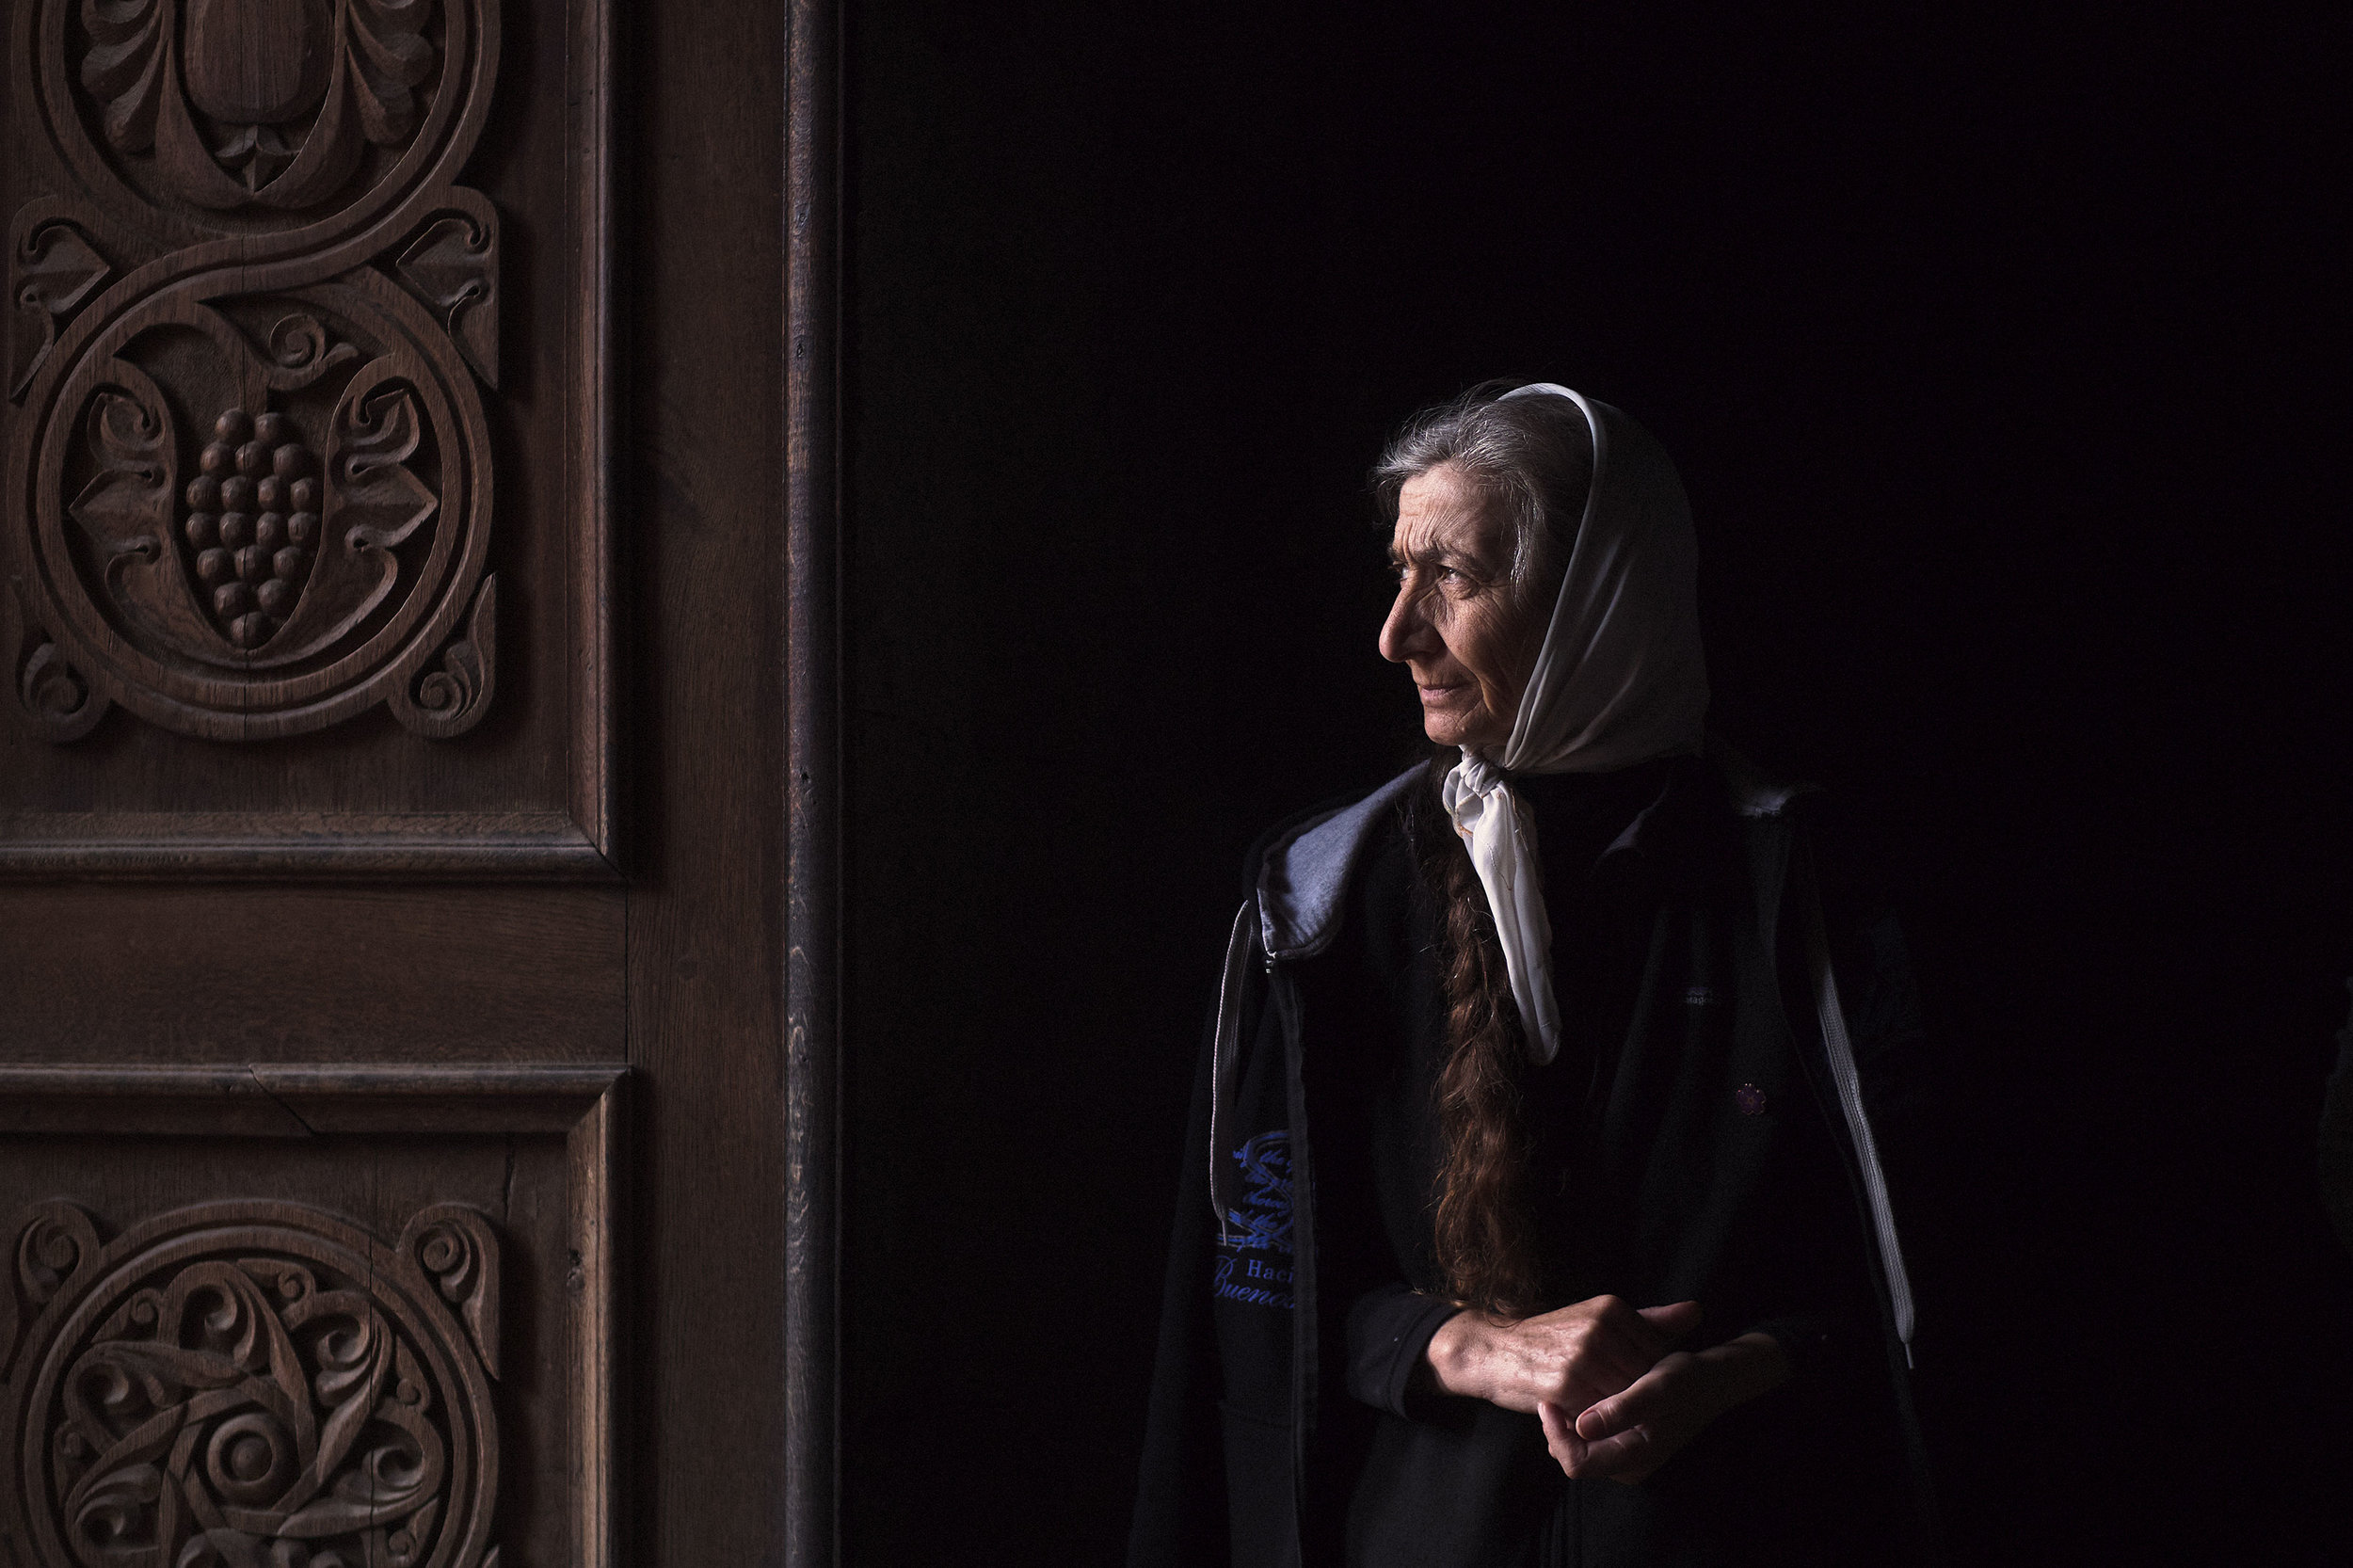 Armenia,-Tatev-monastery---woman-by-the-church-door_1144784.jpg